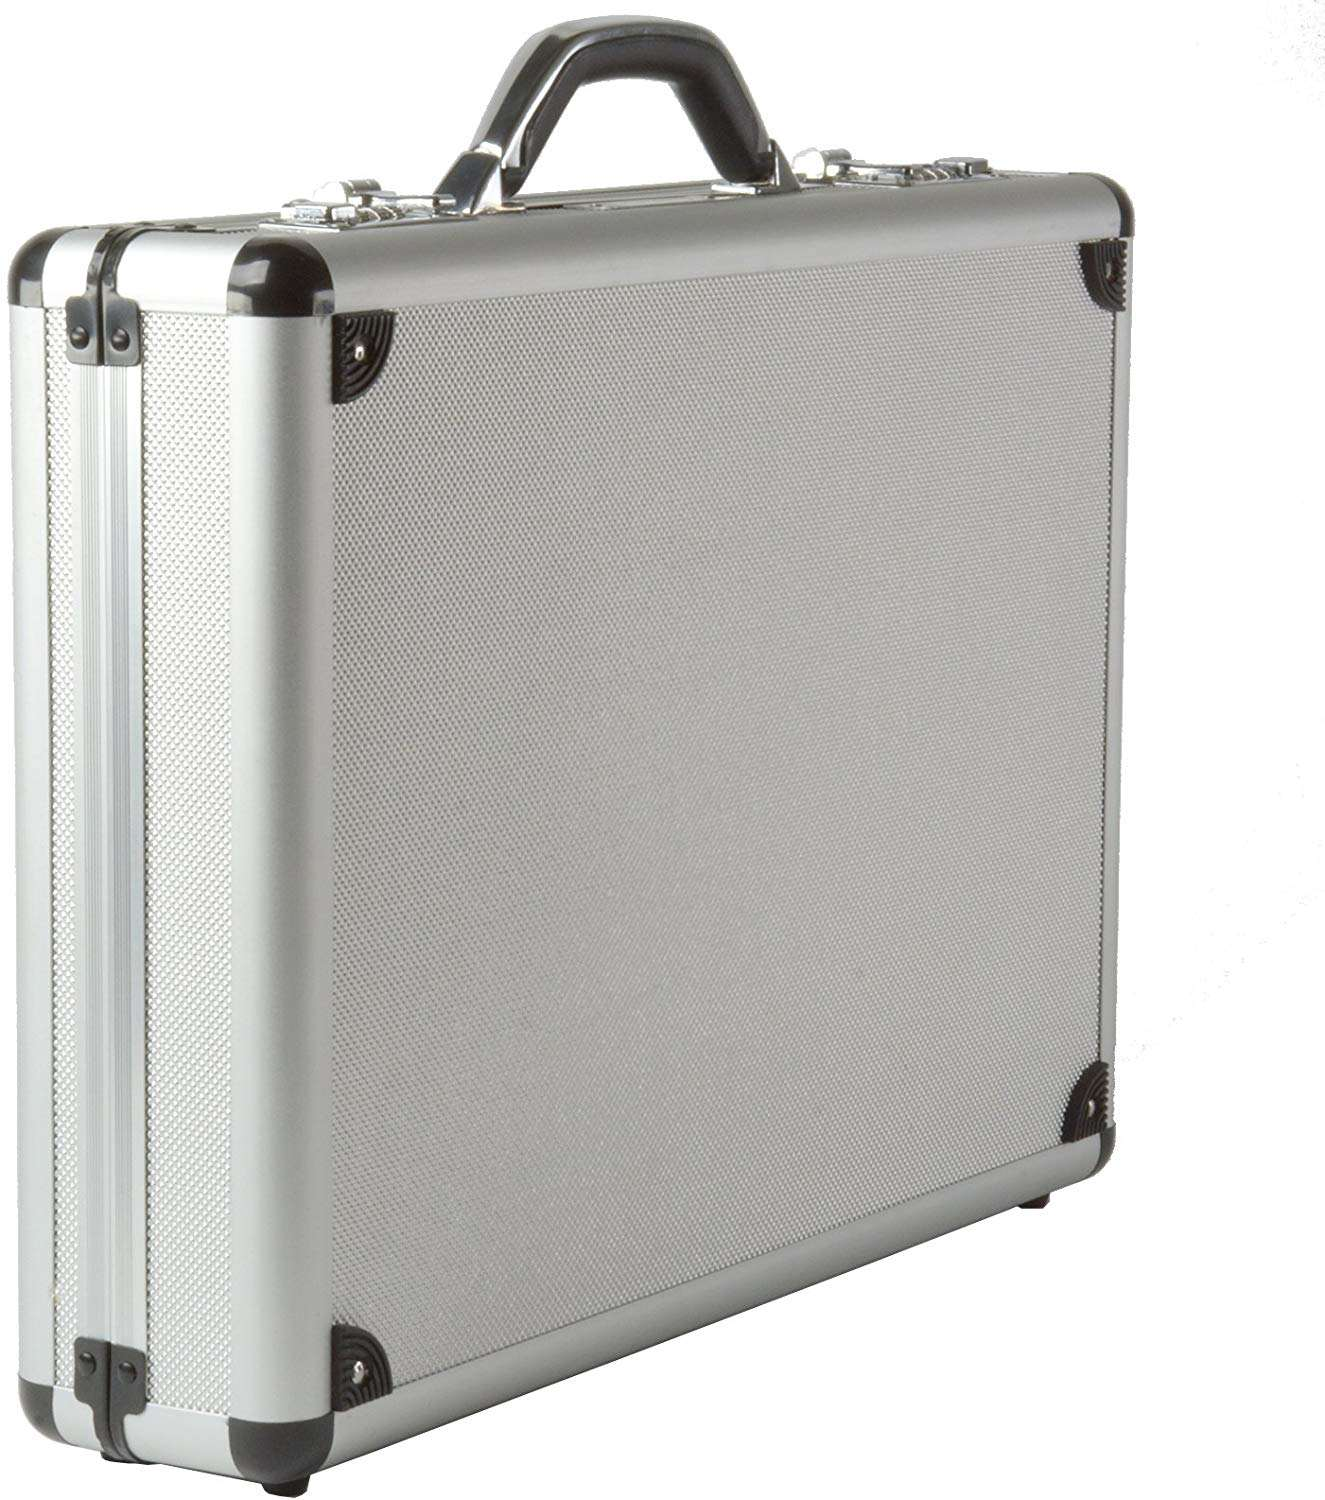 Silver Aluminum Laptop Briefcase Attach Case with Combination Lock